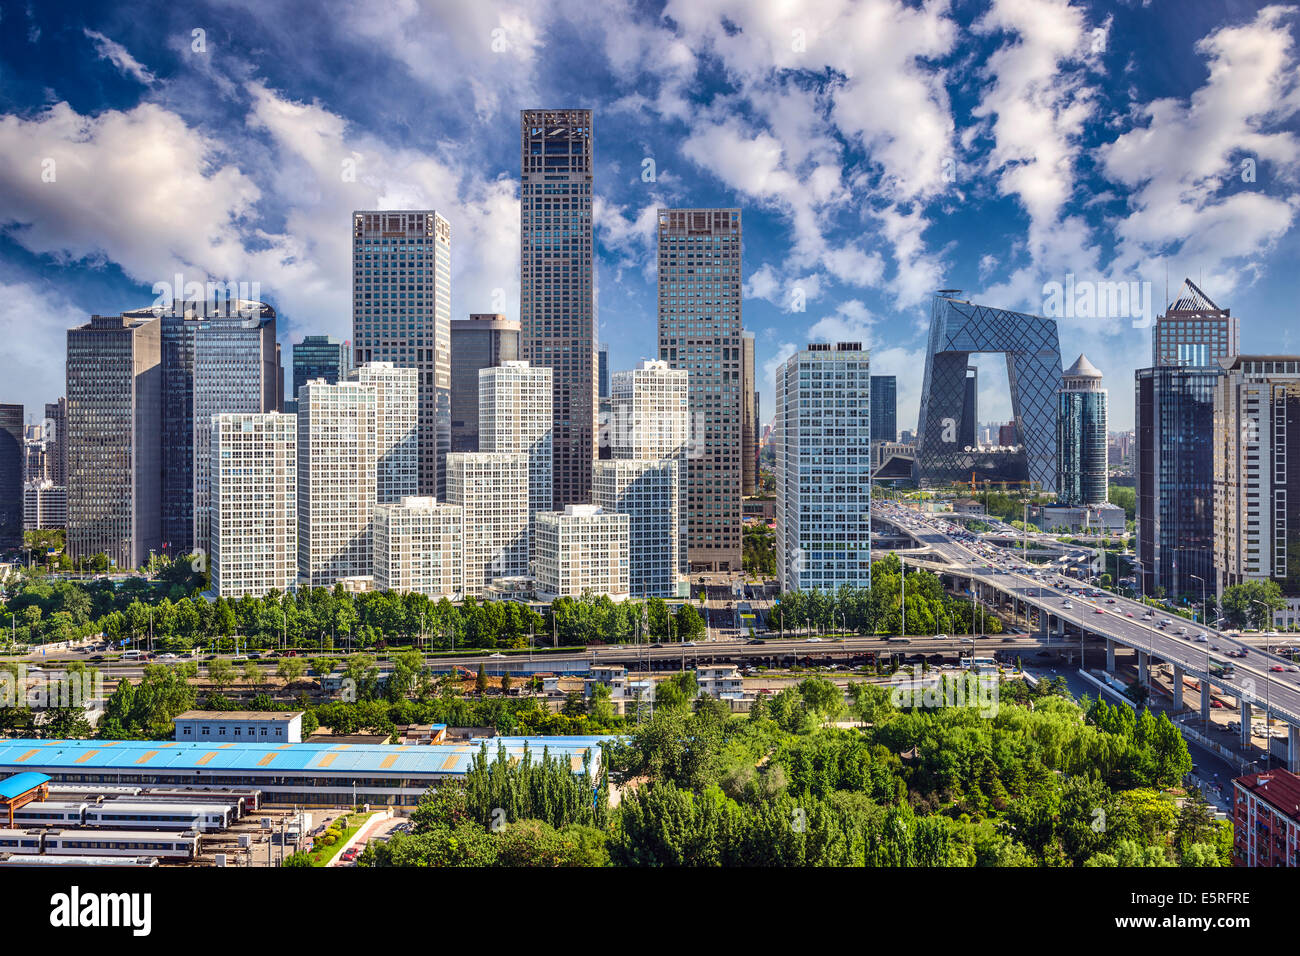 Beijing, China financial district cityscape. - Stock Image